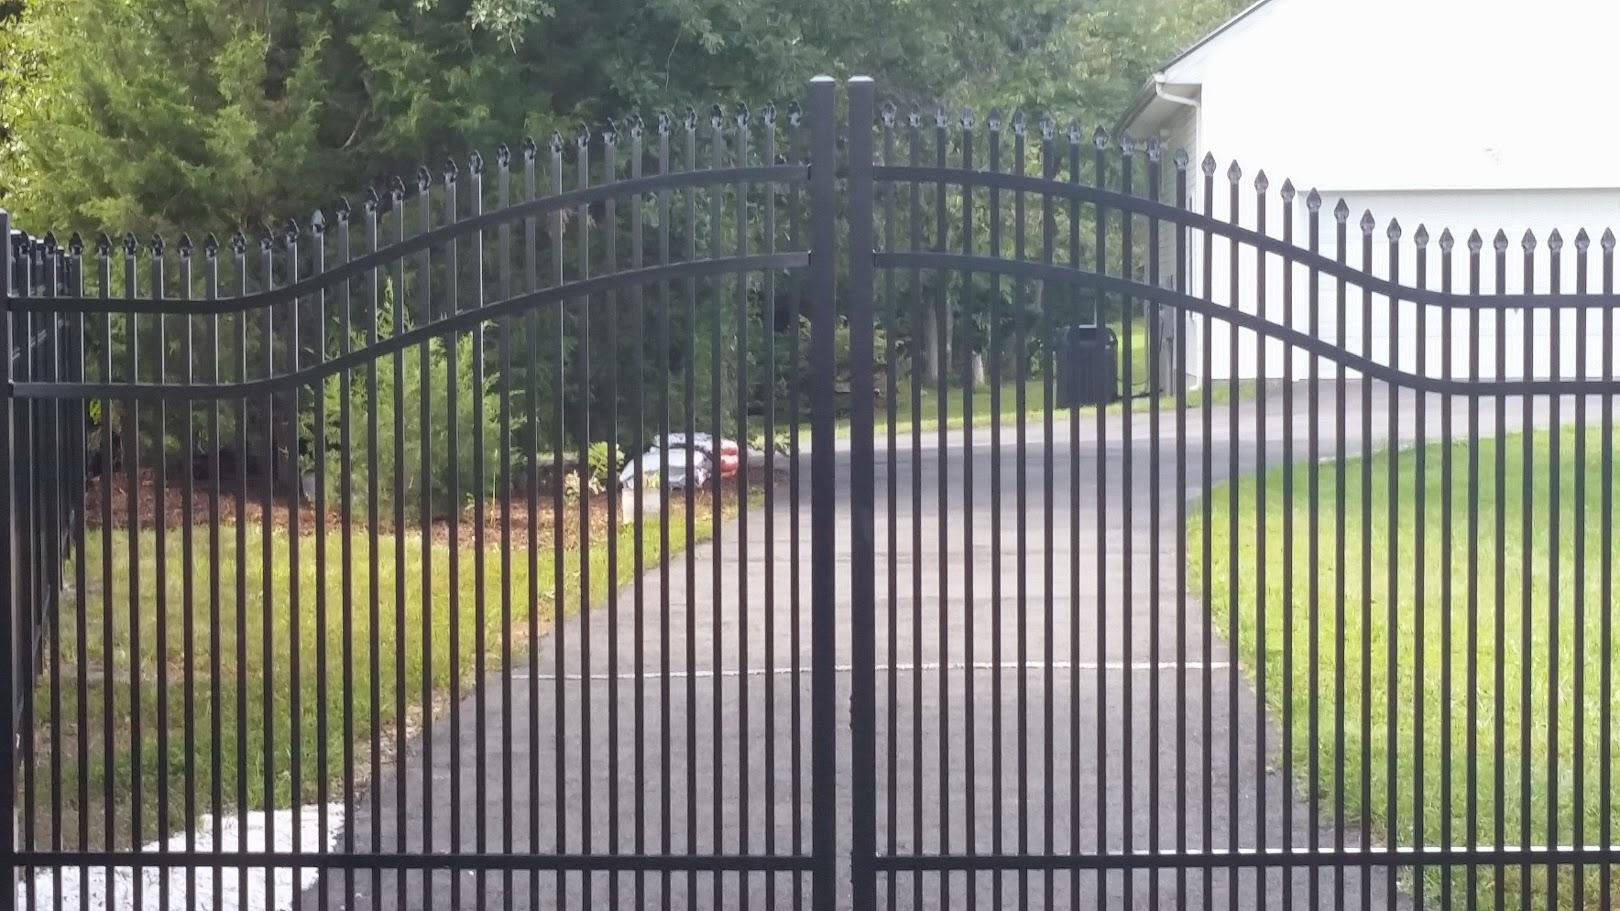 Mc Fence And Deck Driveway Gate Installation In Mclean Va